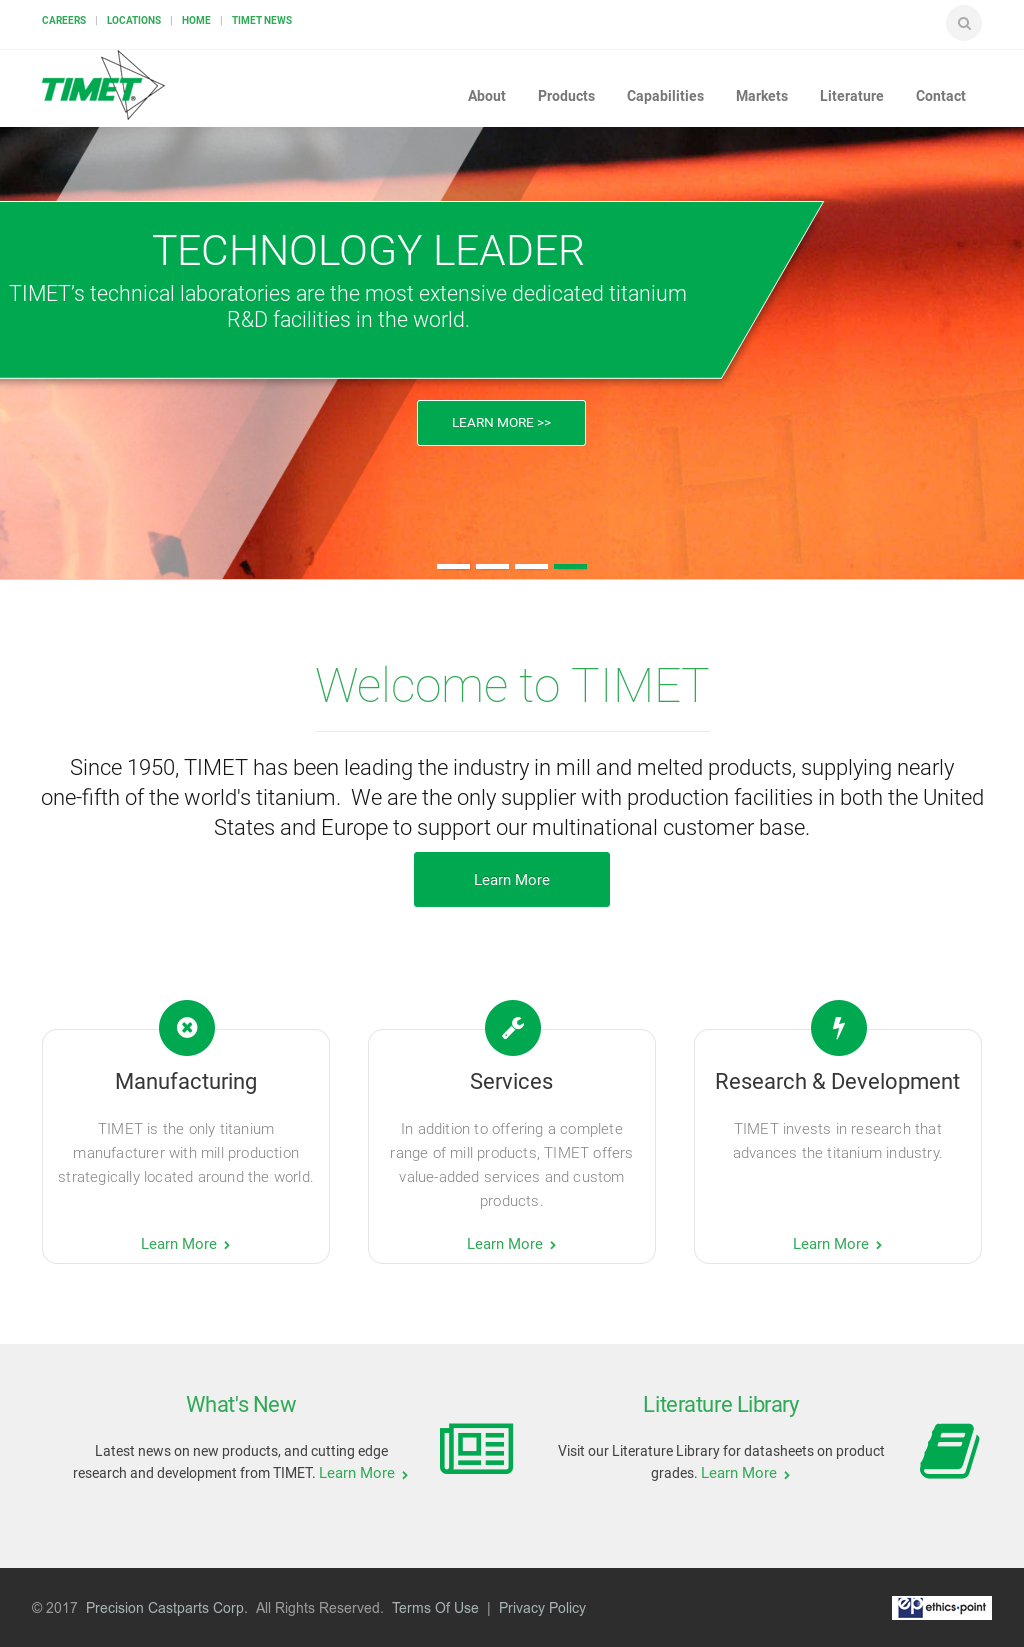 TIMET Competitors, Revenue and Employees - Owler Company Profile